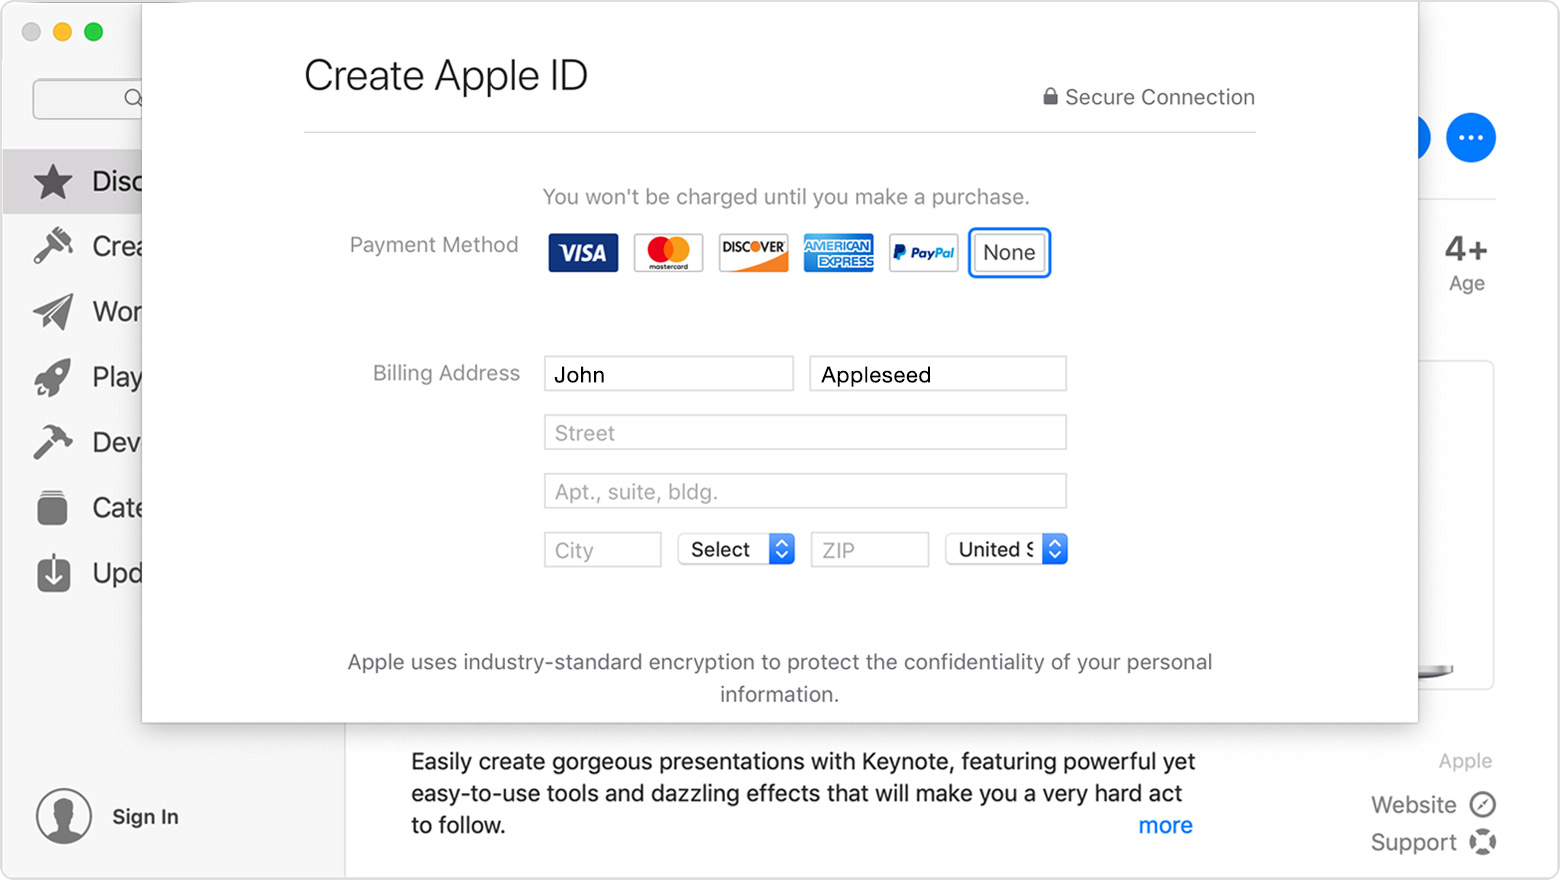 Create or use an Apple ID without a payment method - Apple